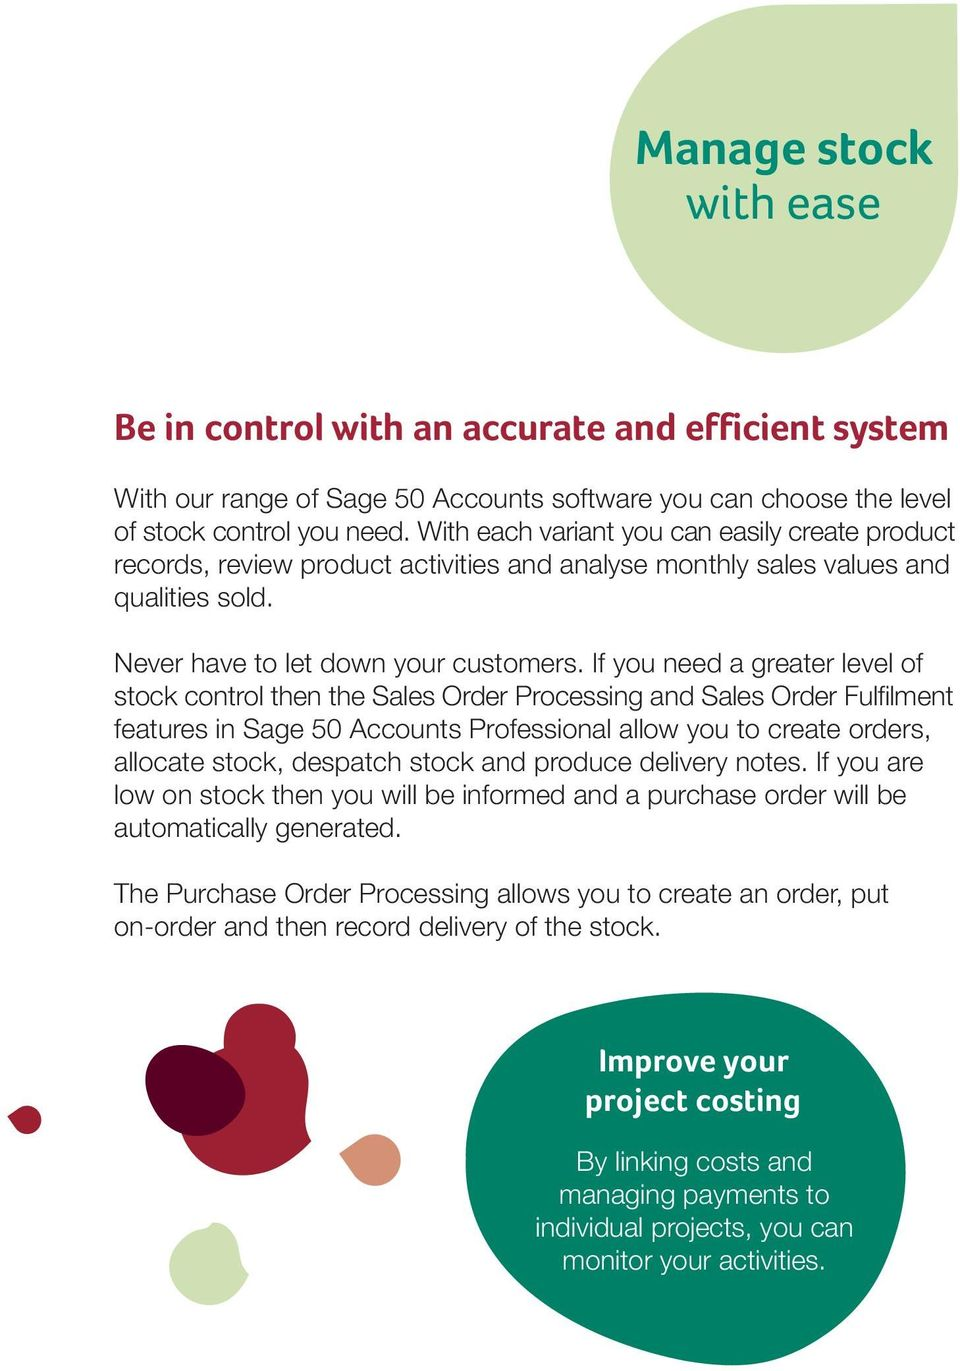 If you need a greater level of stock control then the Sales Order Processing and Sales Order Fulfilment features in Sage 50 Accounts Professional allow you to create orders, allocate stock, despatch